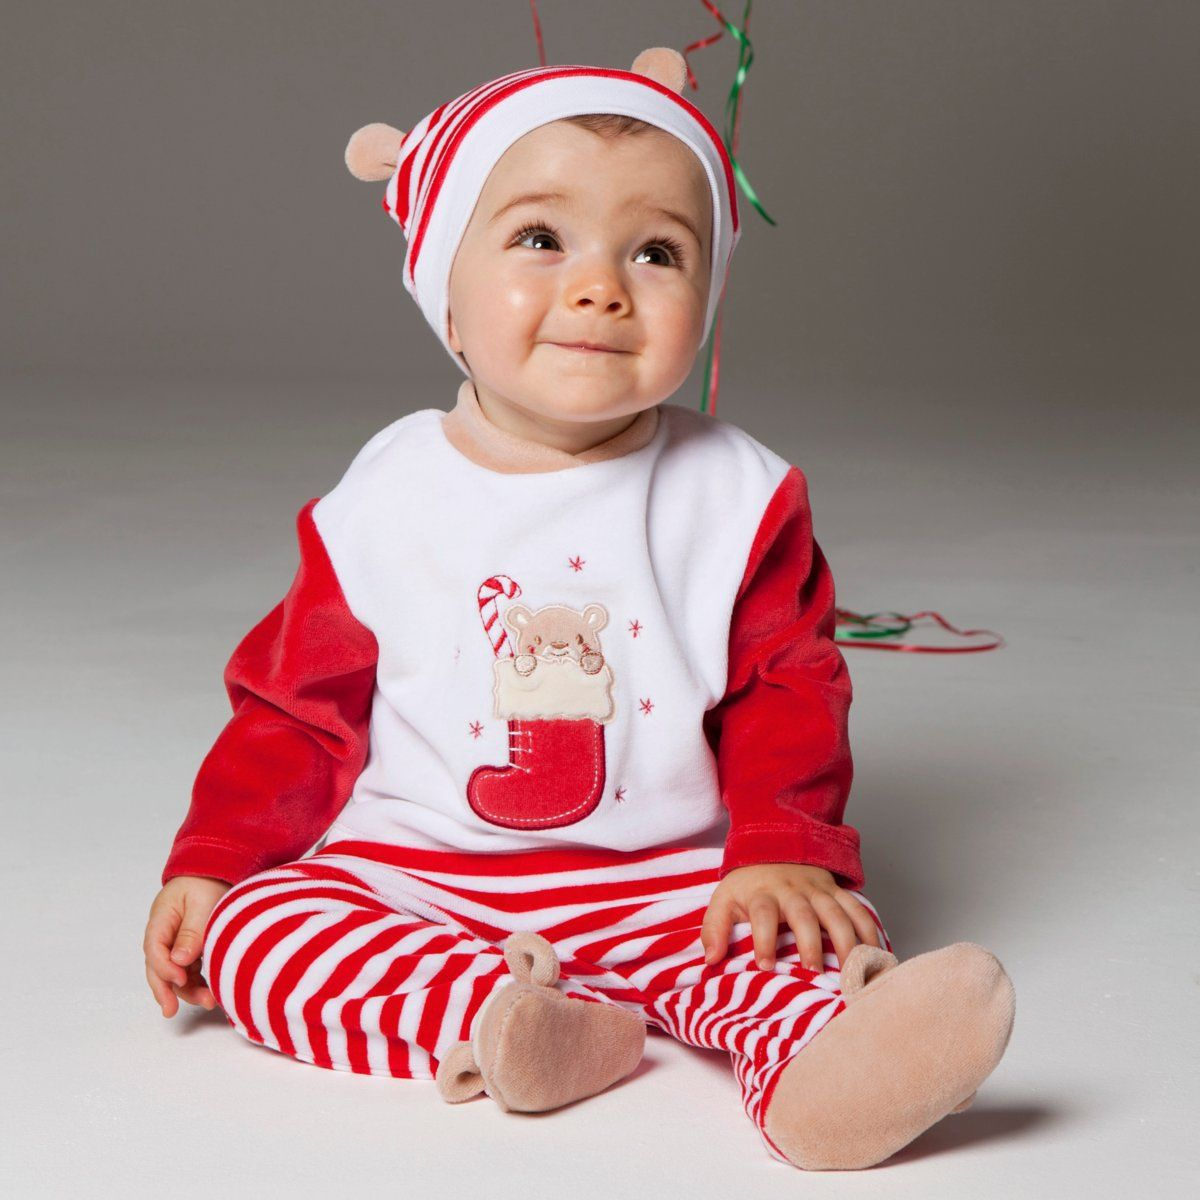 Spread the cheer with baby girl Christmas clothes at Carter's. Shop now for darling baby girl holiday clothes & enjoy free shipping for the holidays.